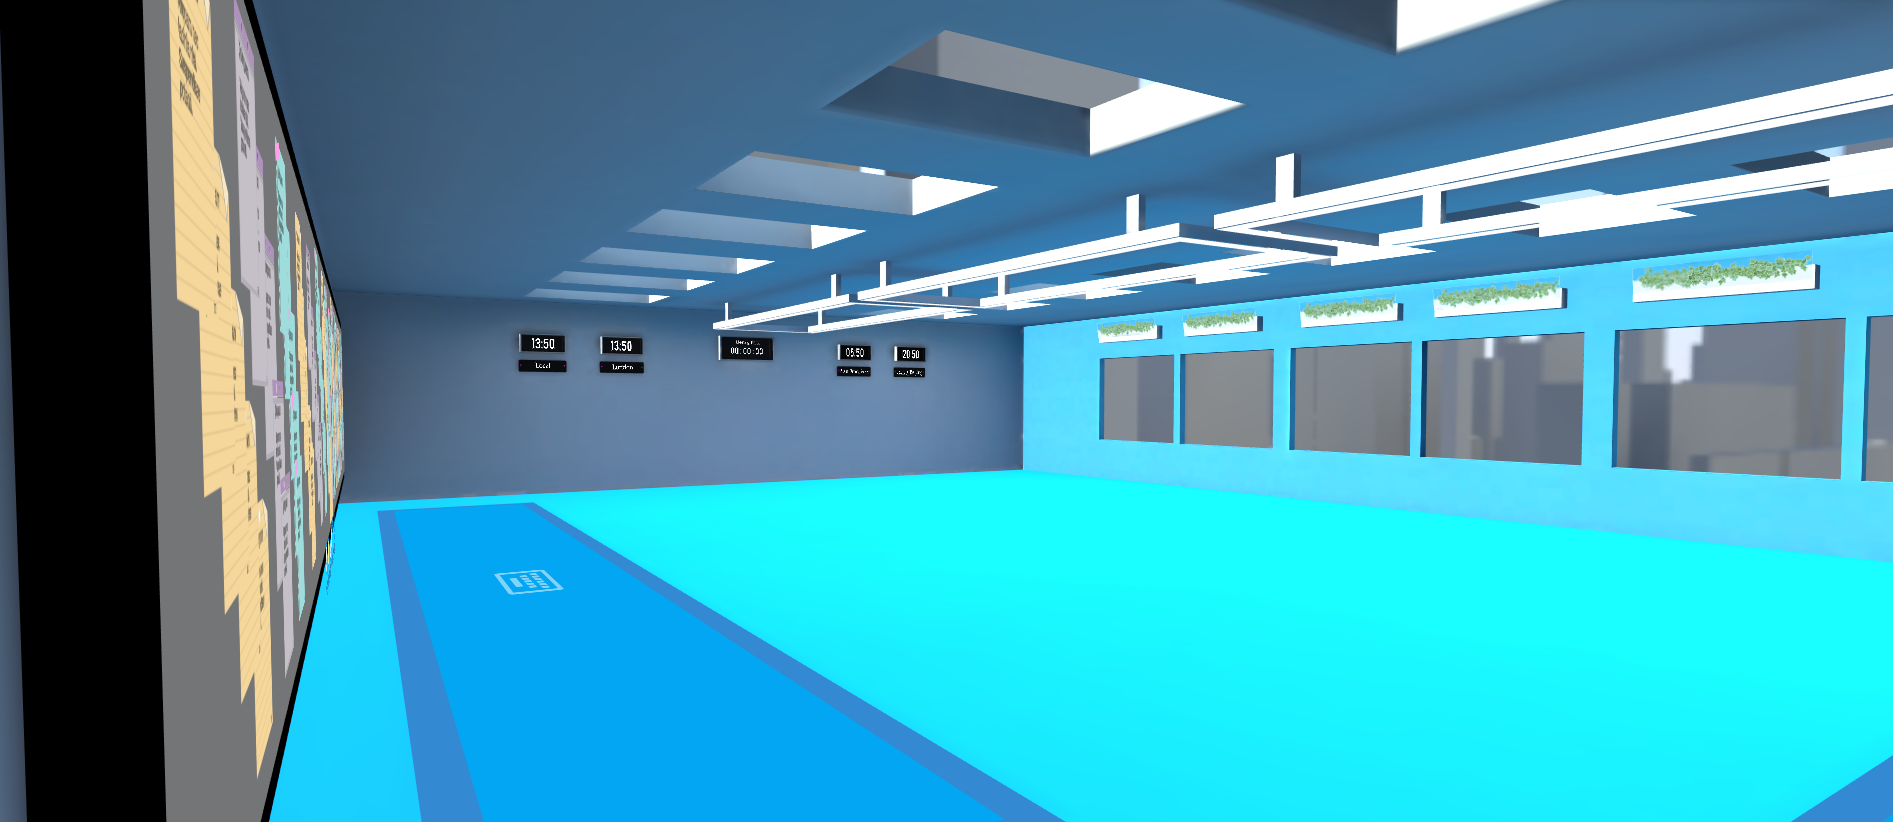 a shot of the large collaboration view showing one sticky note wall and the time-zone clocks on the far wall with another wall including windows with a city view